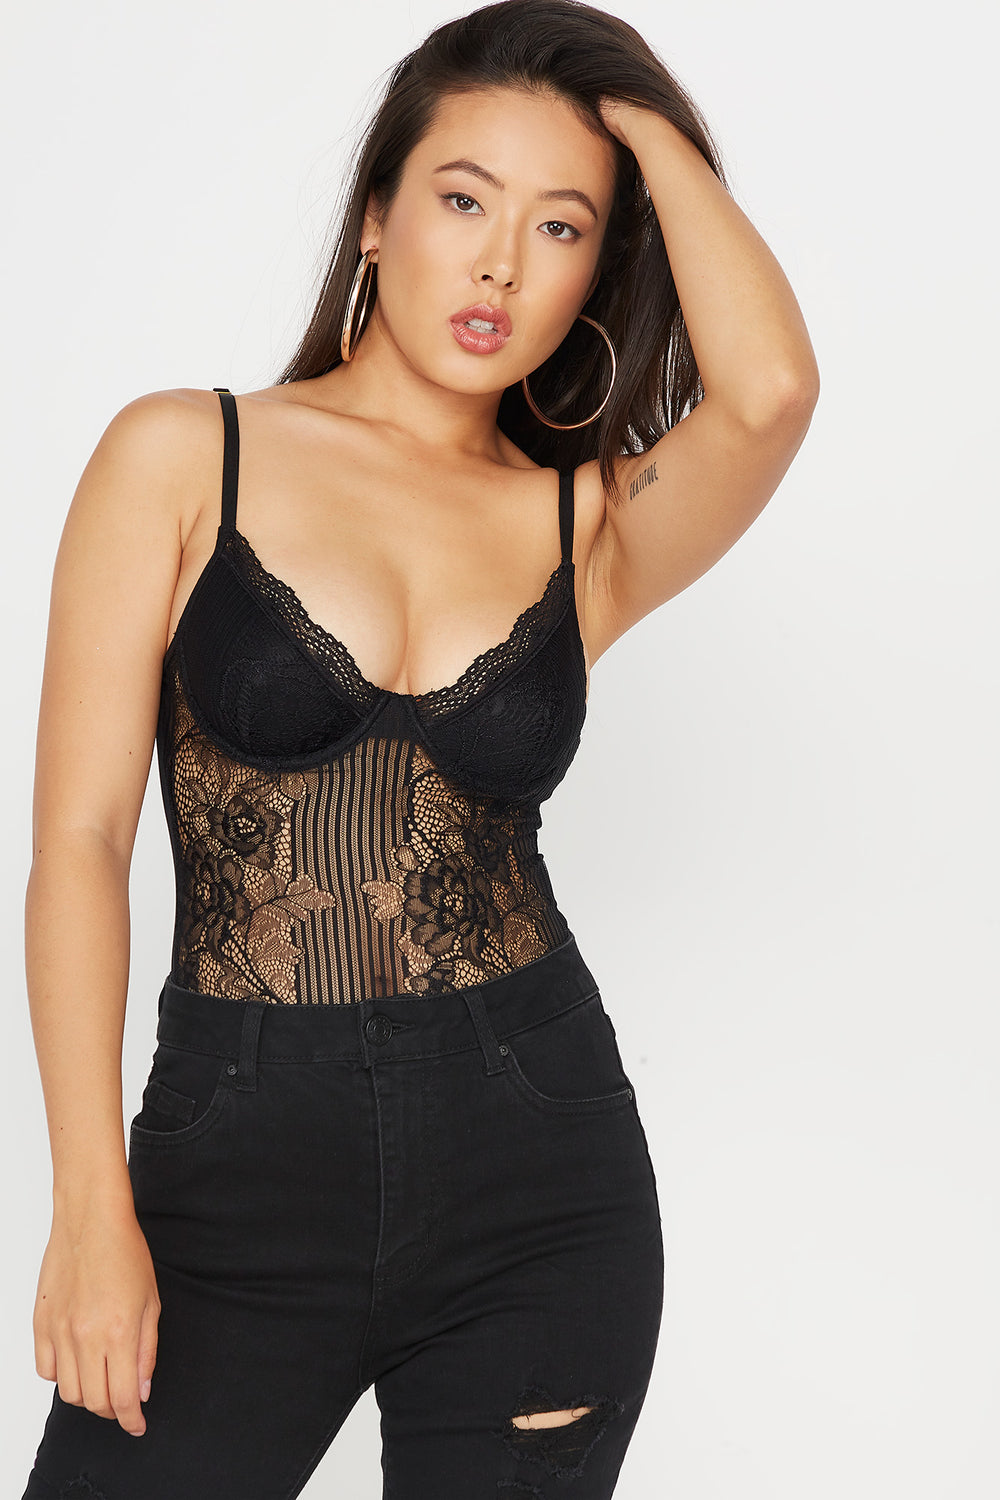 Mesh Lace Underwire Bodysuit Black